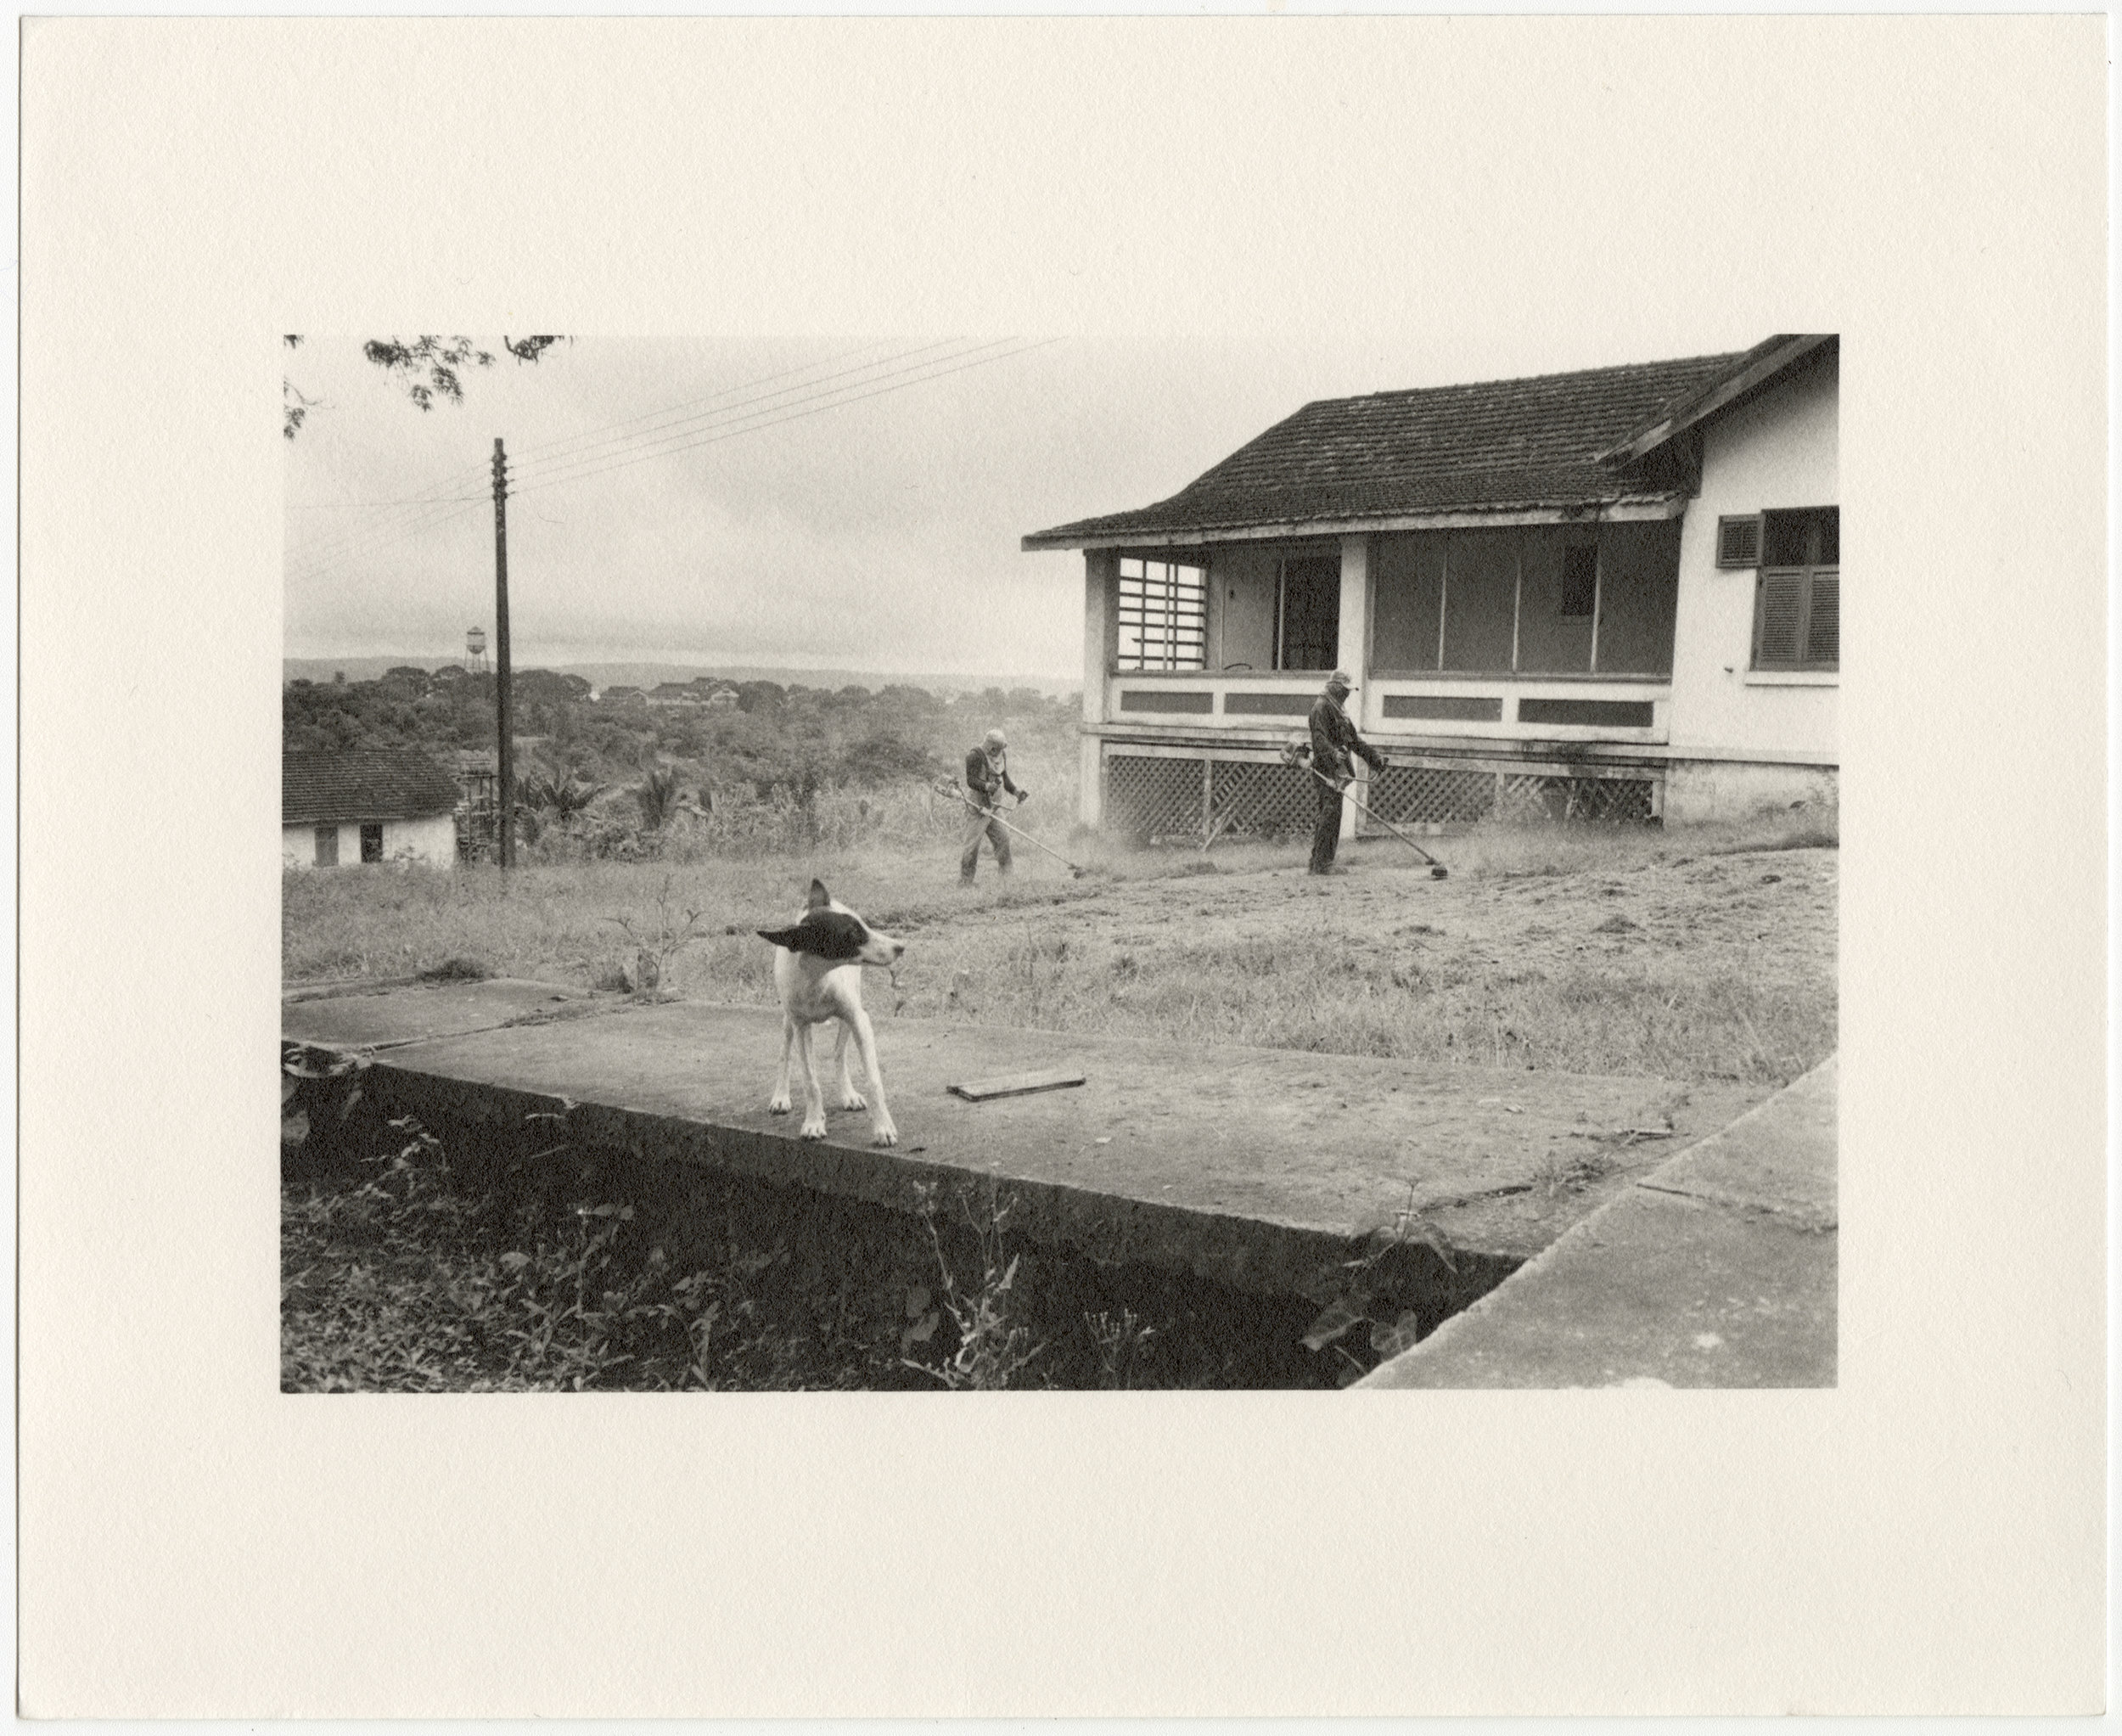 "Fordlândia manager's house on Vila Americana, with men weedwacking the front yard and dog, built in 1929 by the Companhia Ford Industrial Do Brasil Ford Motor Company. 2014, Fordlândia, Pará, Brazil. Gelatin silver fiber print, 8"" x 10"", 2014/2018"